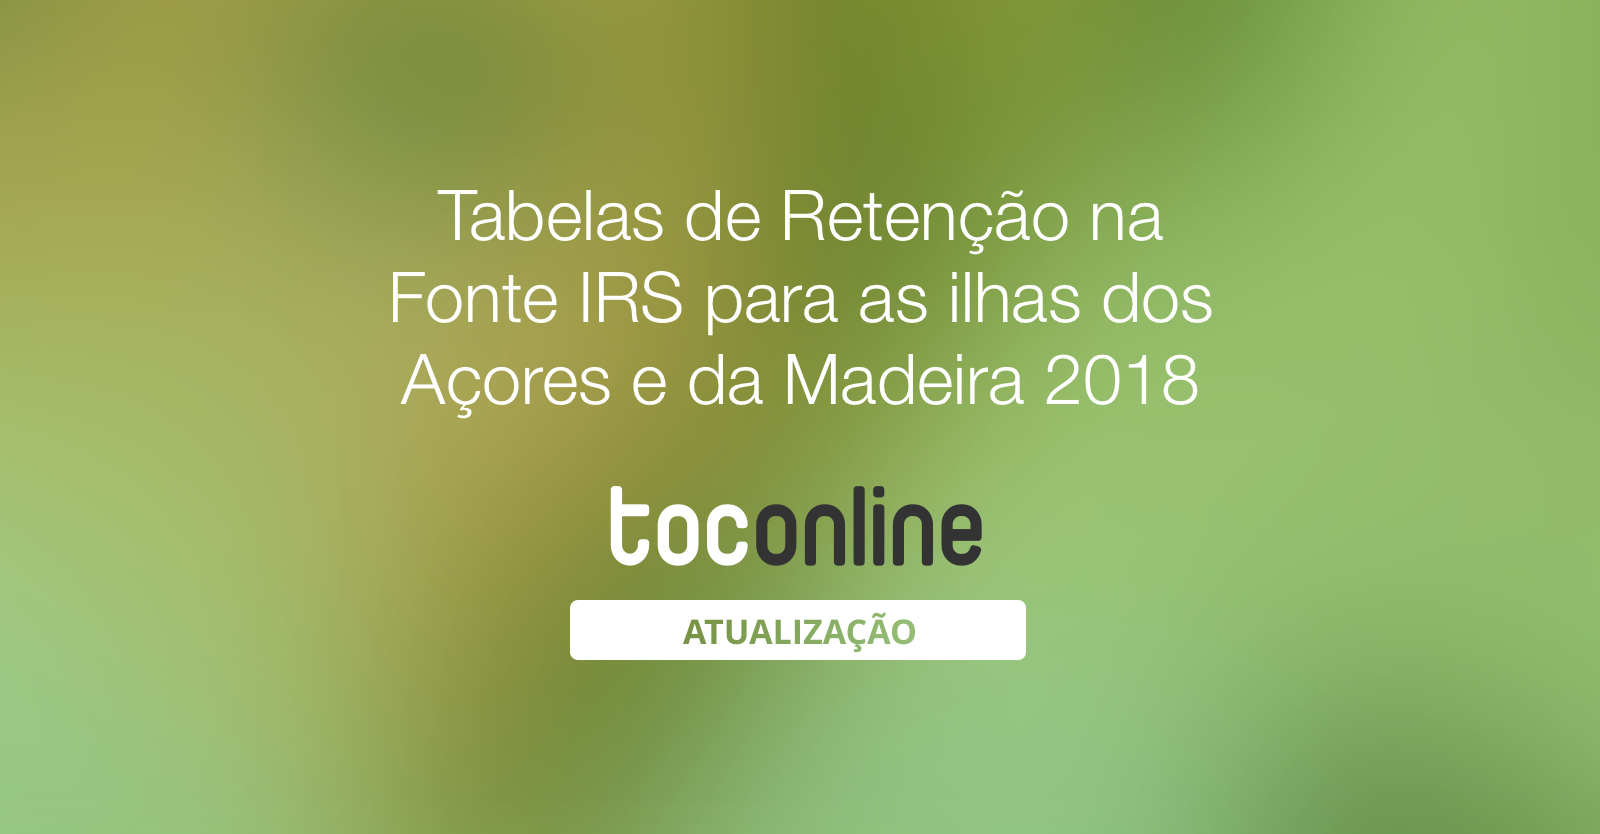 Post tabelas retencao irs ilhas 2018